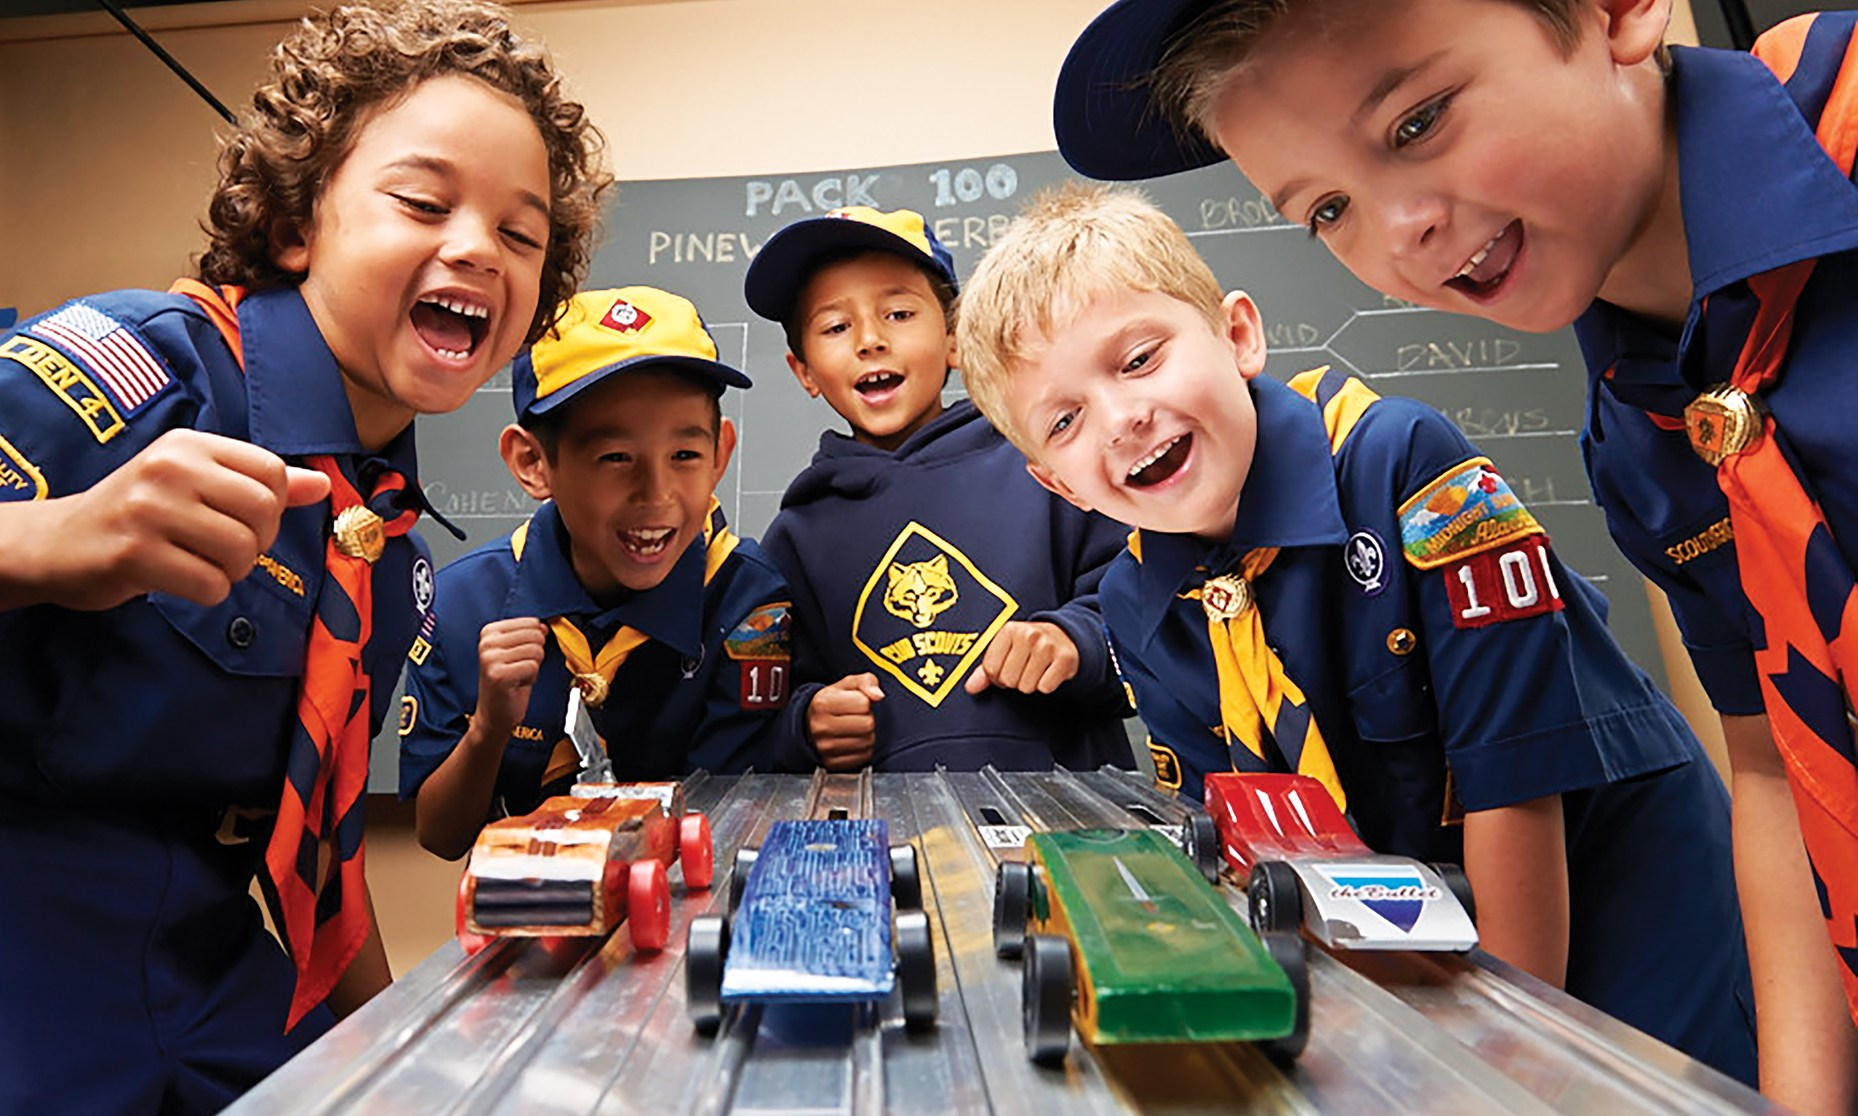 Pinewood Derby competition open to all Boy Scouts, kids, and adults… Bring you former Pinewood Derby Champion!